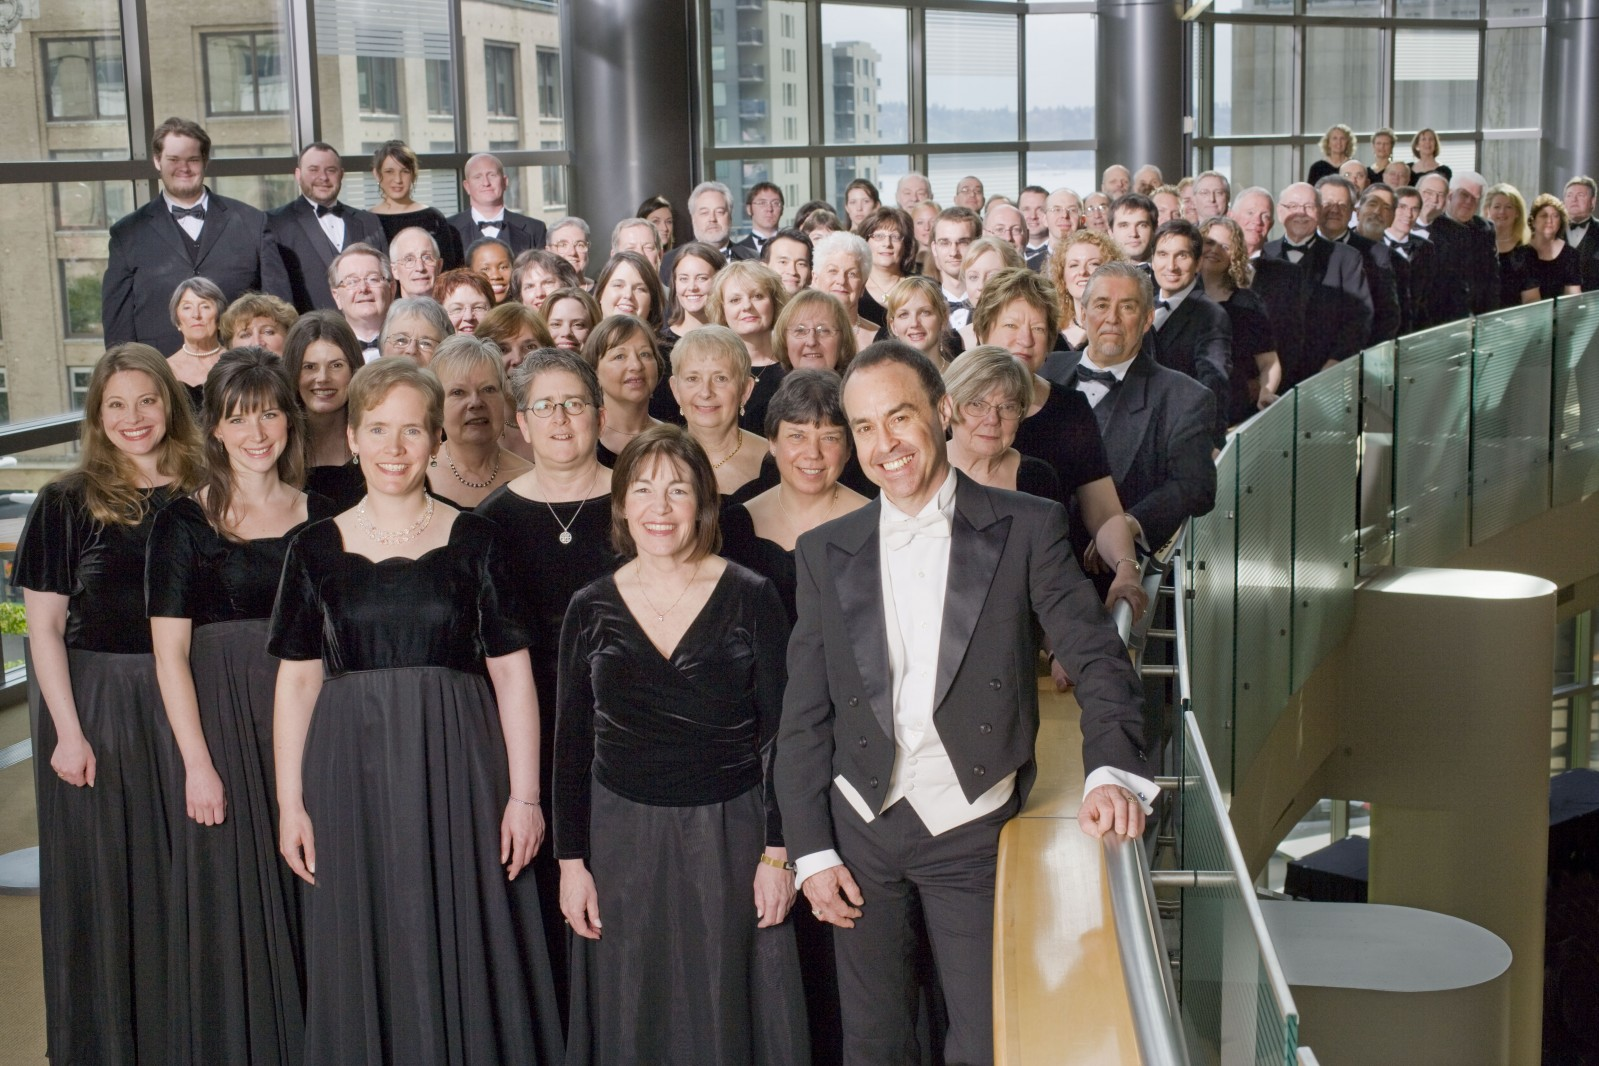 Seattle Choral Company. In the Grand Lobby at Benaroya Hall. Photo by Geoff Manasse.